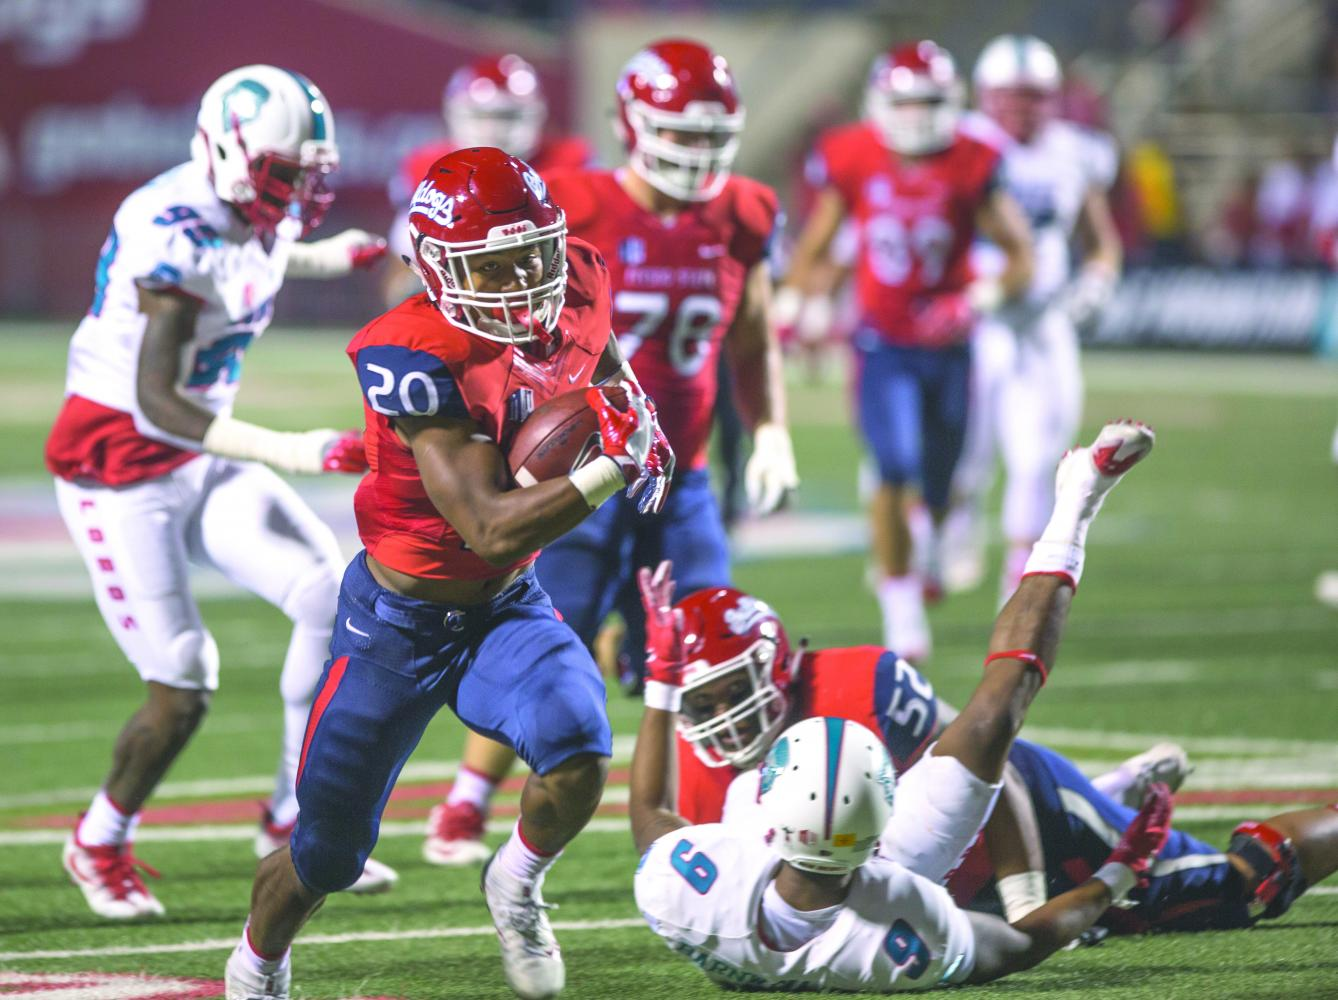 Freshman running back Ronnie Rivers separates from the defense during Fresno State's 38-0 win over New Mexico on Oct. 14. SDSU faces Fresno on Oct. 21 at SDCCU Stadium.